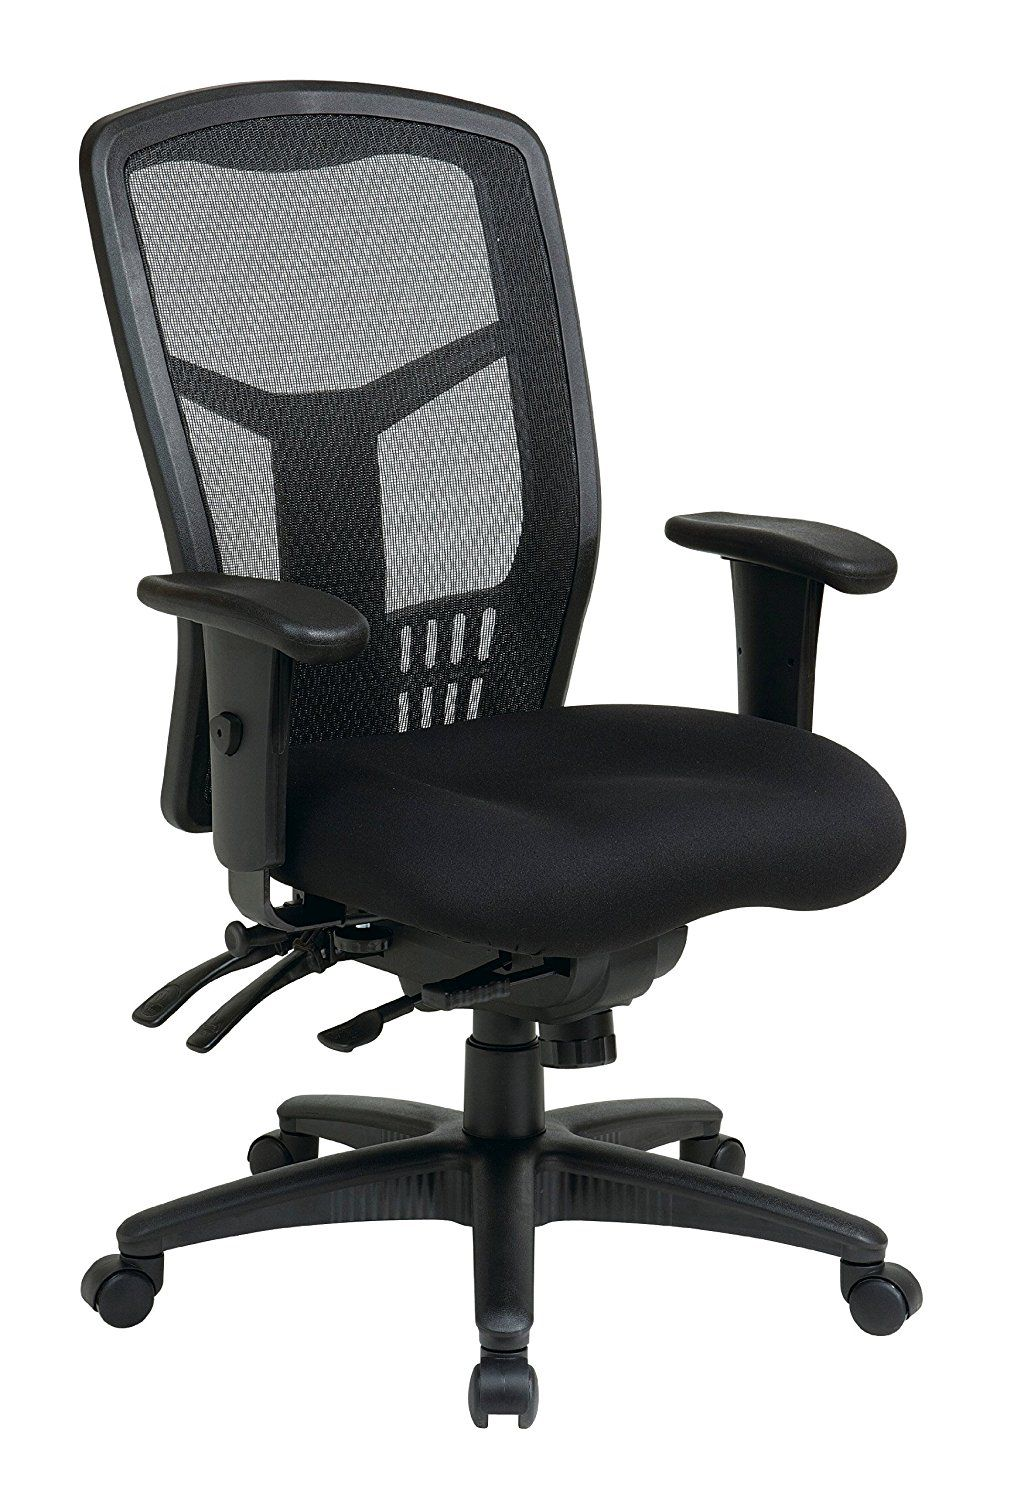 Ergonomic Chair The 7 Best Ergonomic Office Chairs To Buy In 2018